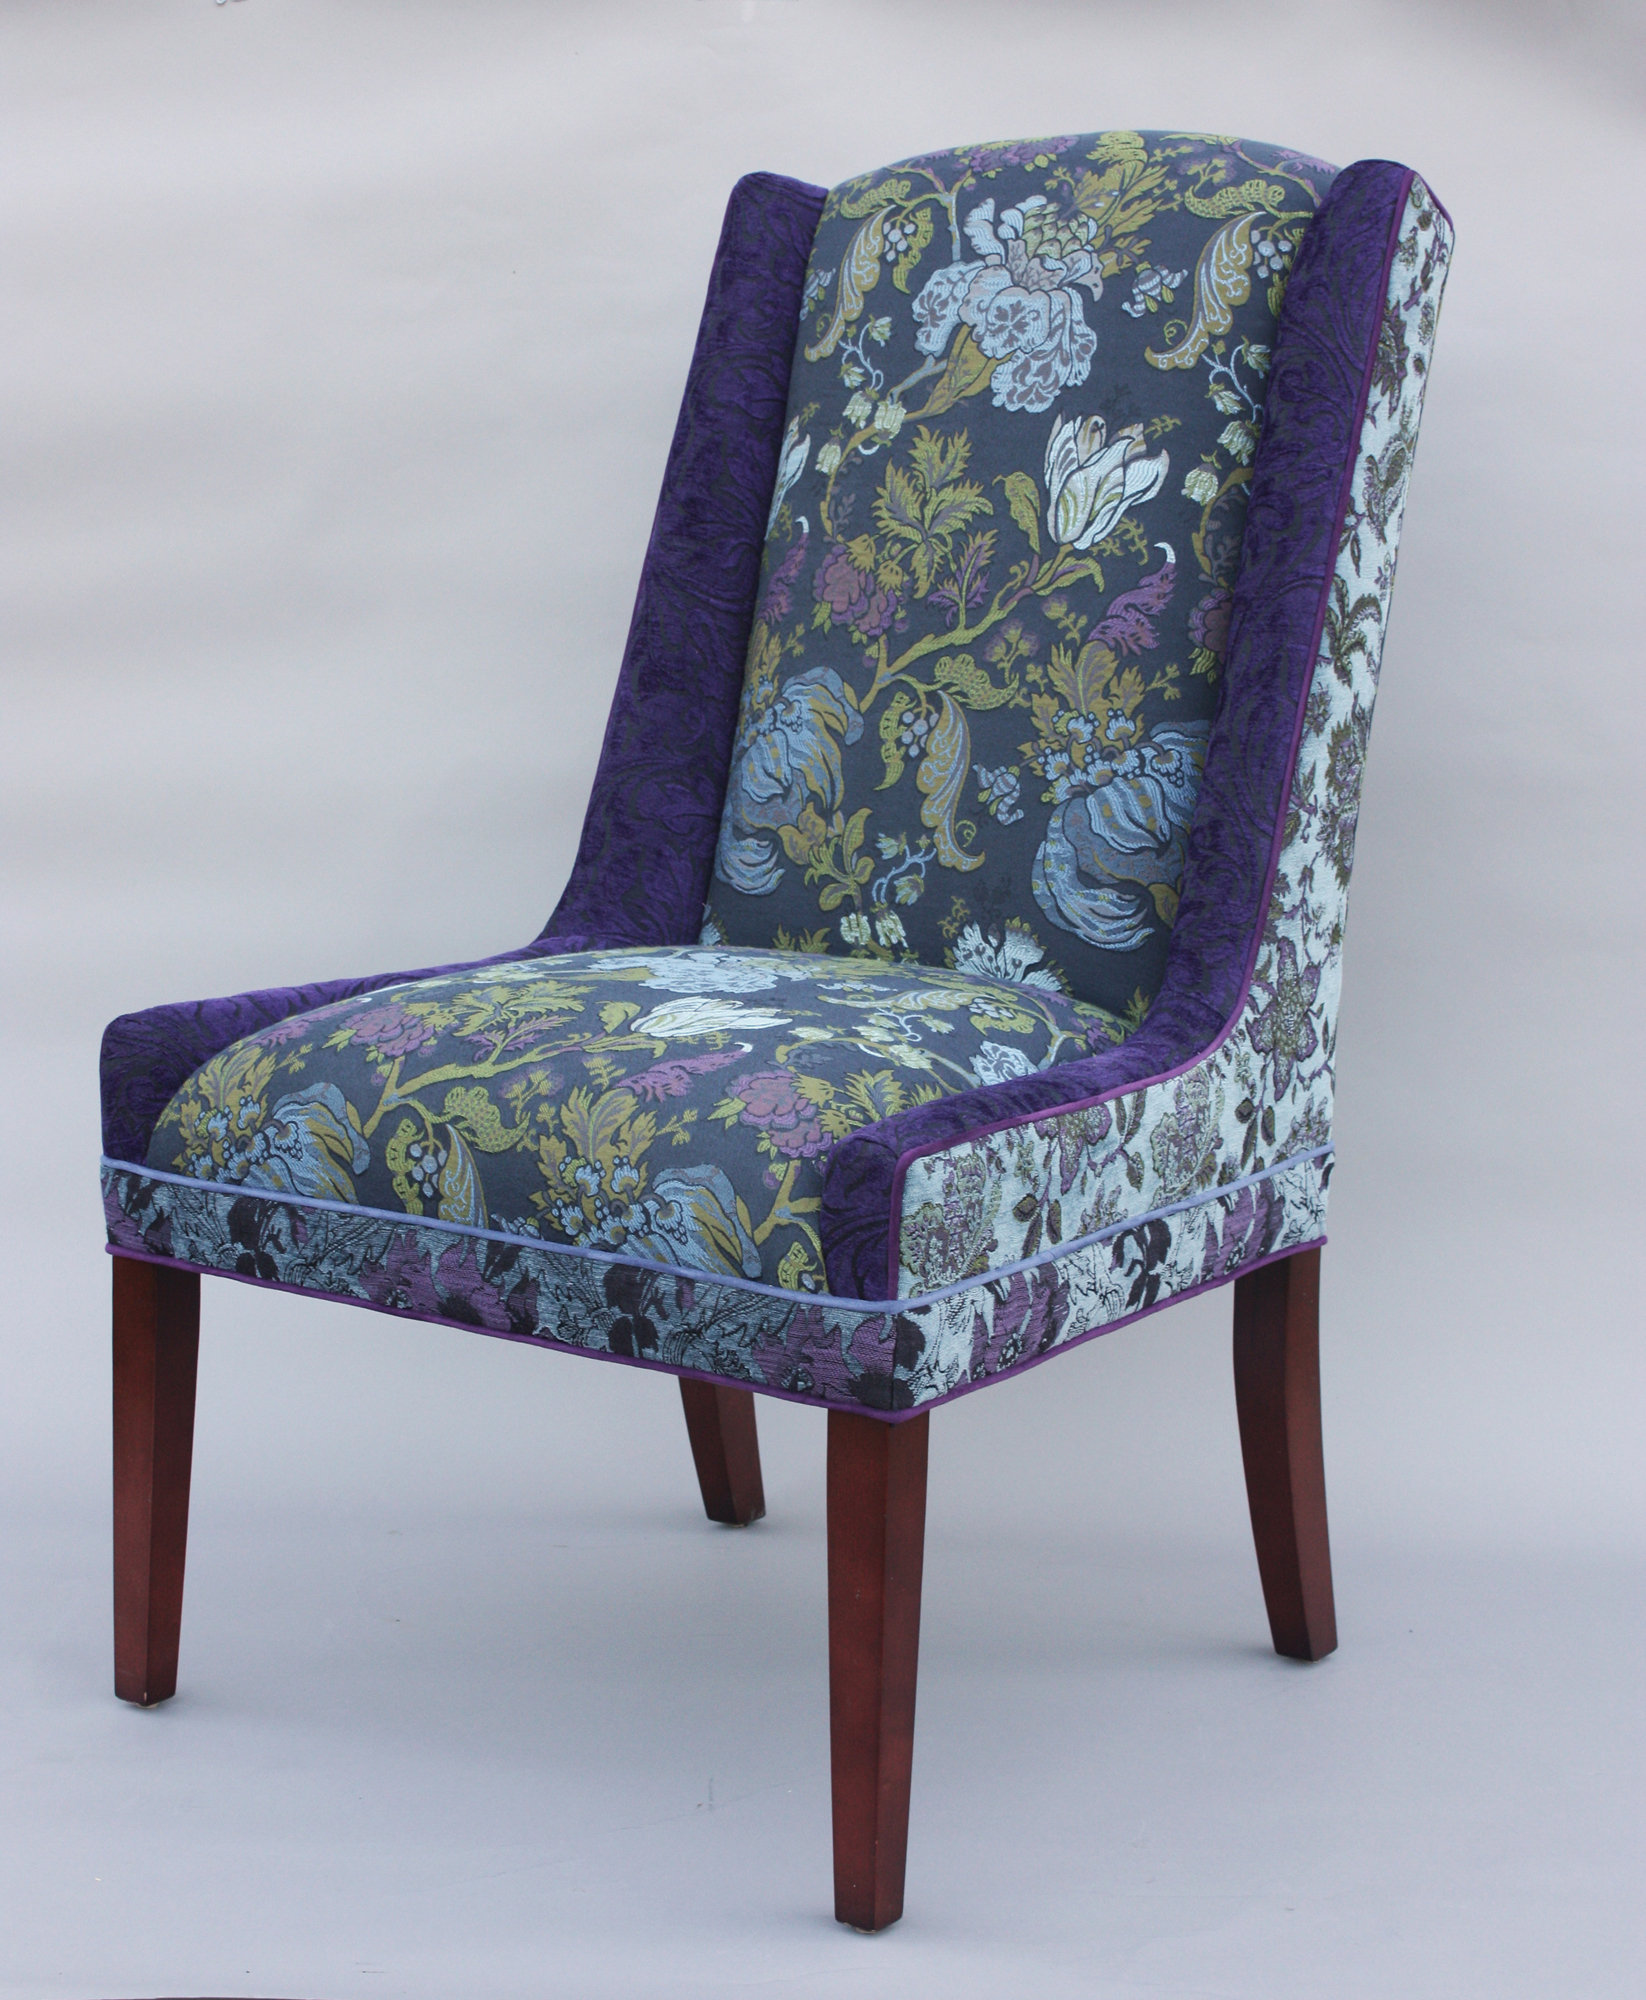 Windham Chair In Blue Lavender By Mary Lynn Ou0027Shea (Upholstered Chair) |  Artful Home